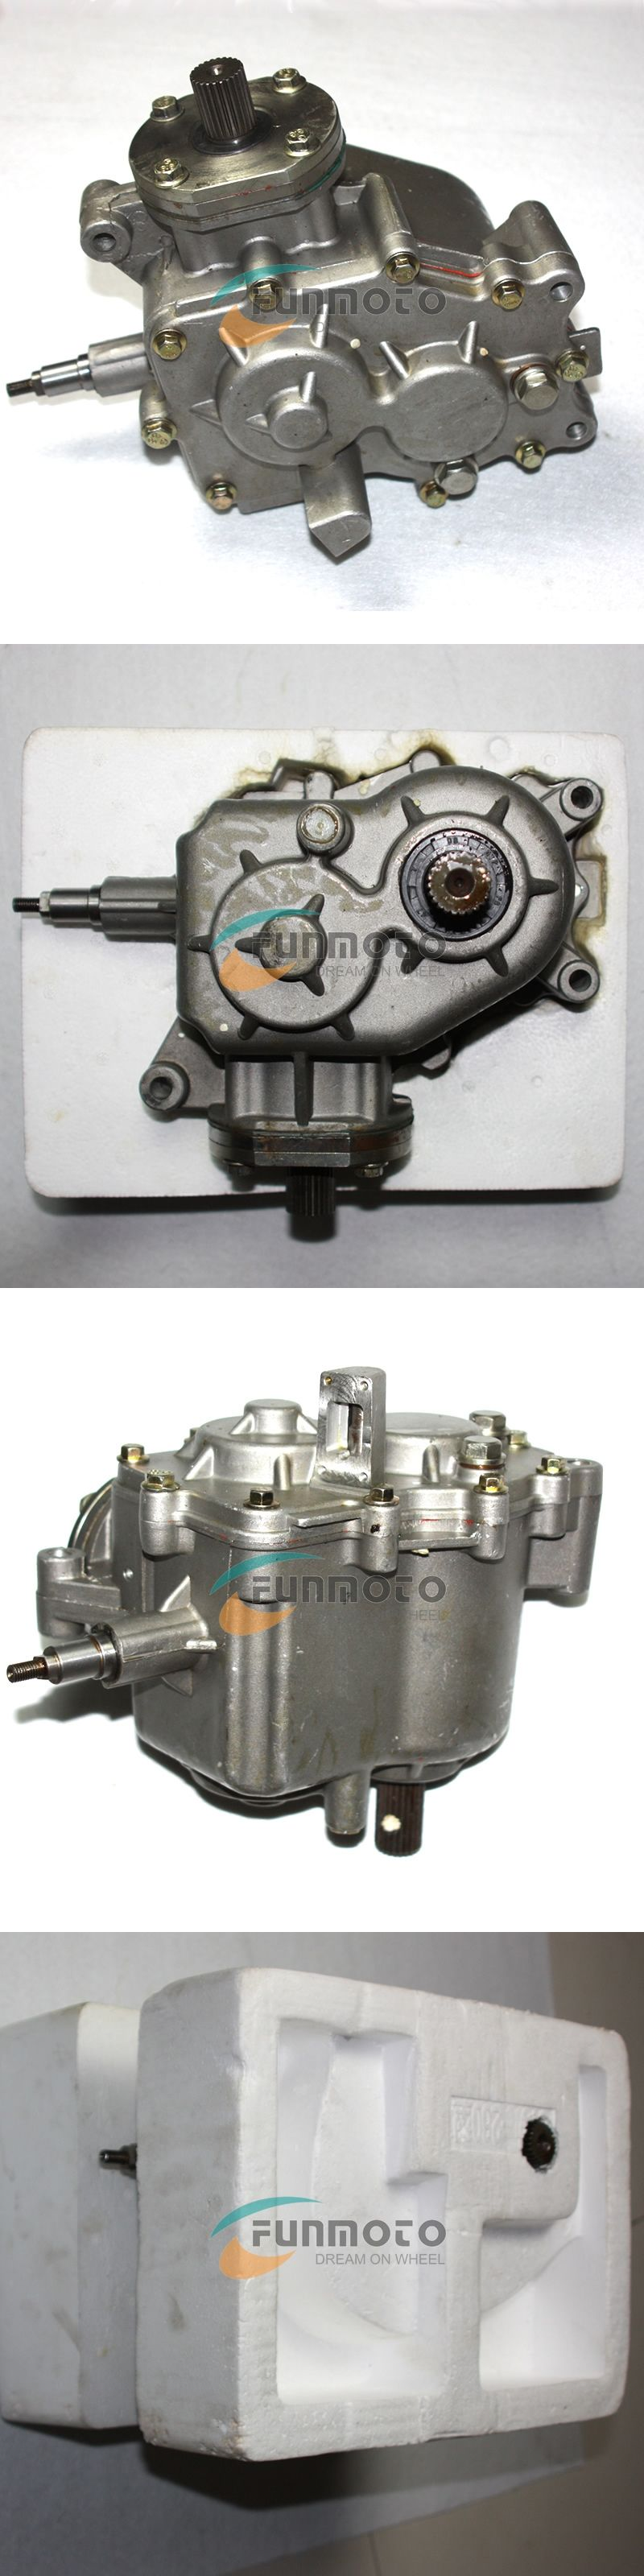 Big Discount Gearbox Of Atv 260 Yh260 Beyond Shift Gear Box Motorcycle 260cc